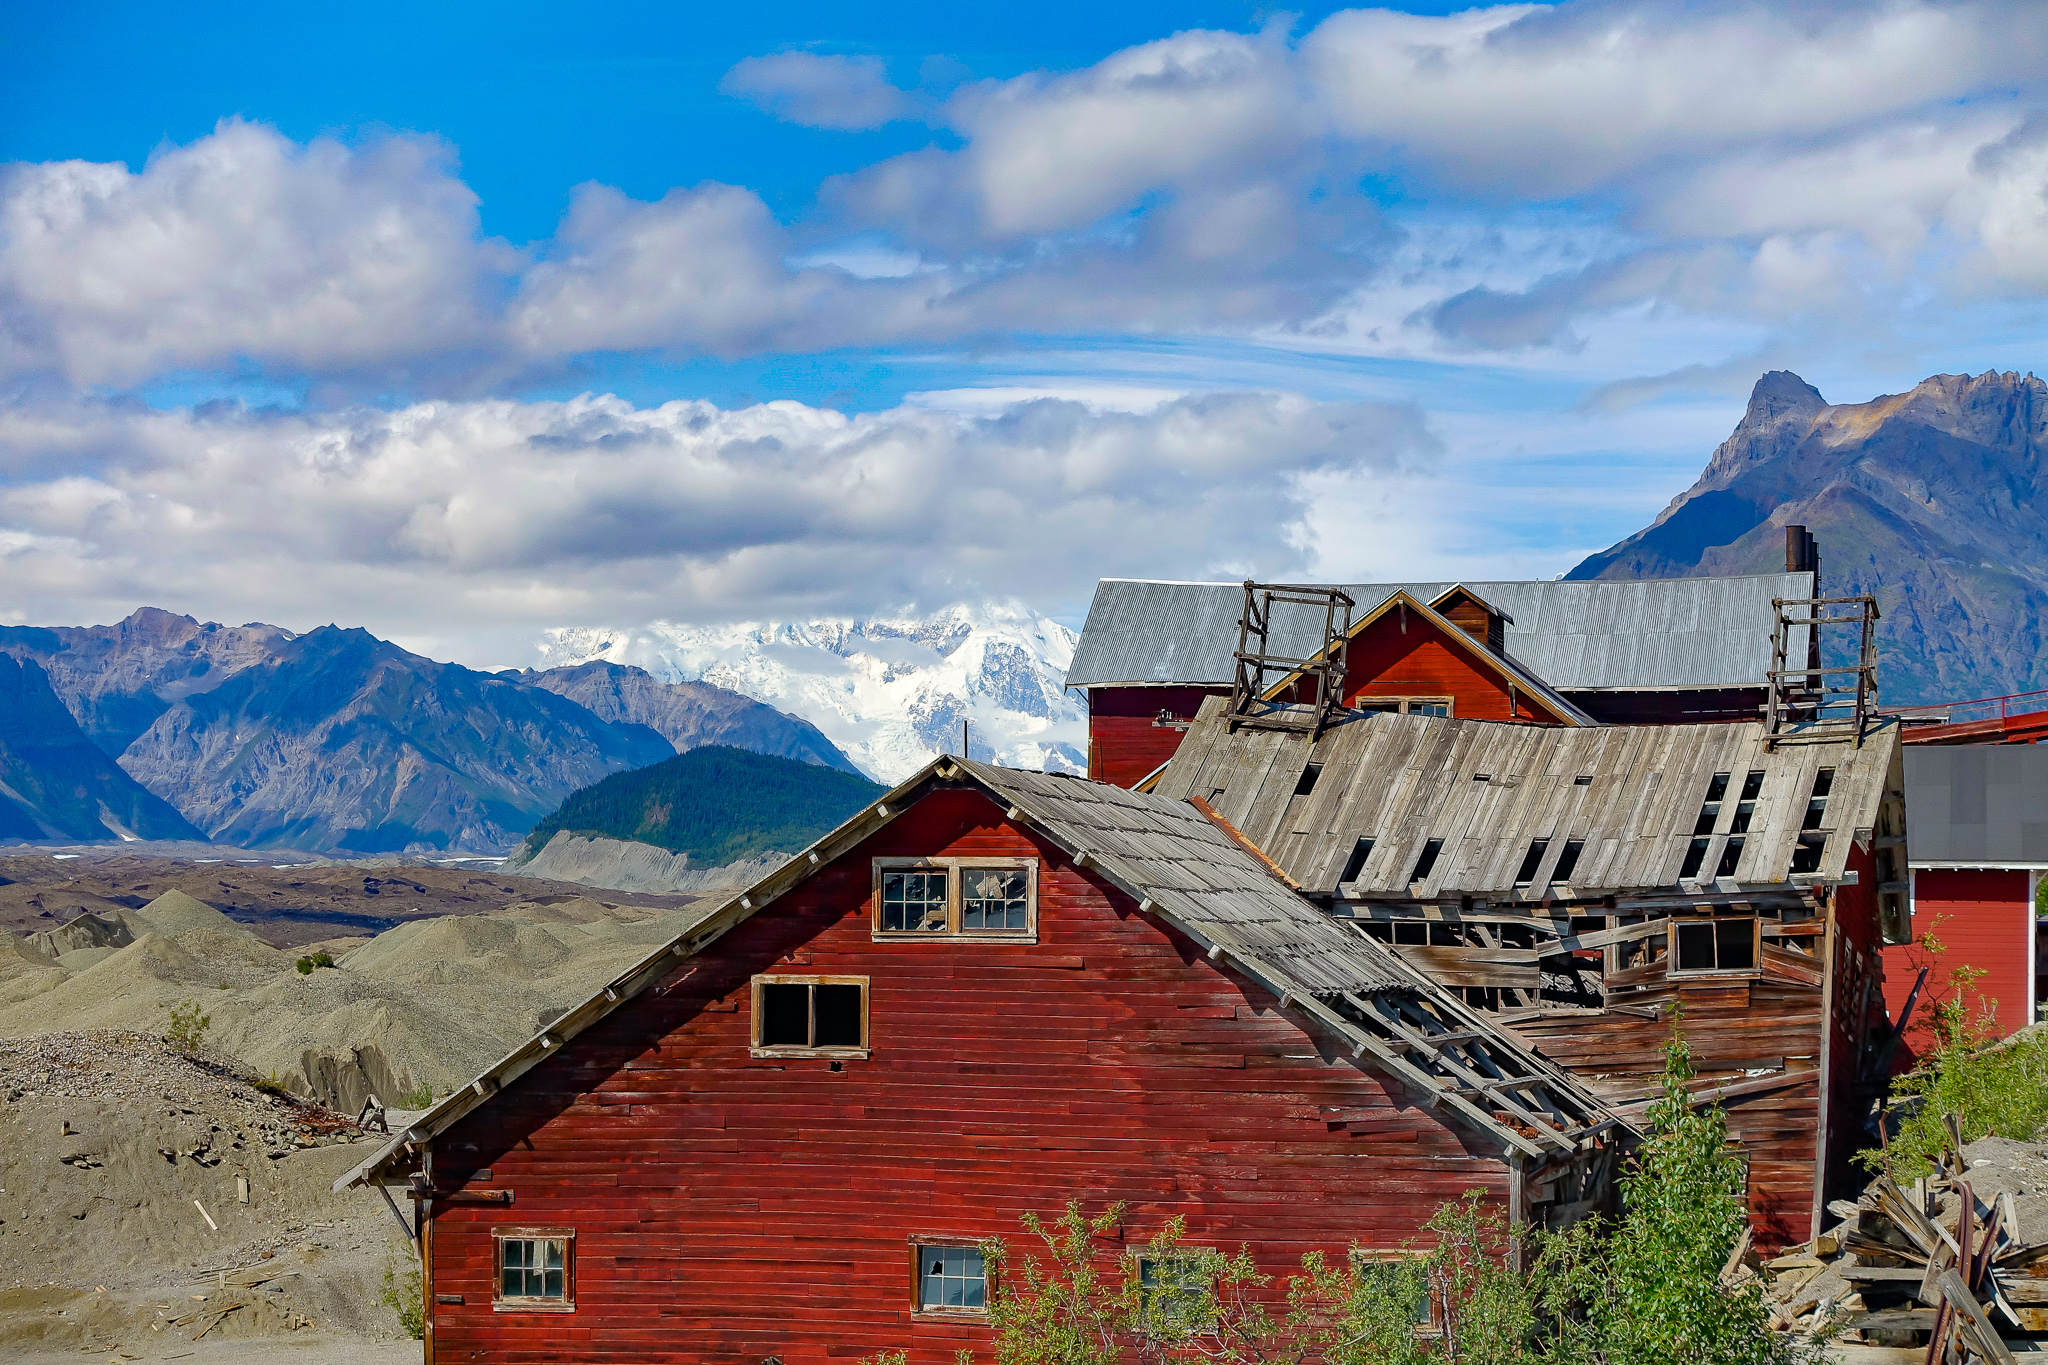 Abandoned mining camp (Kennecott).